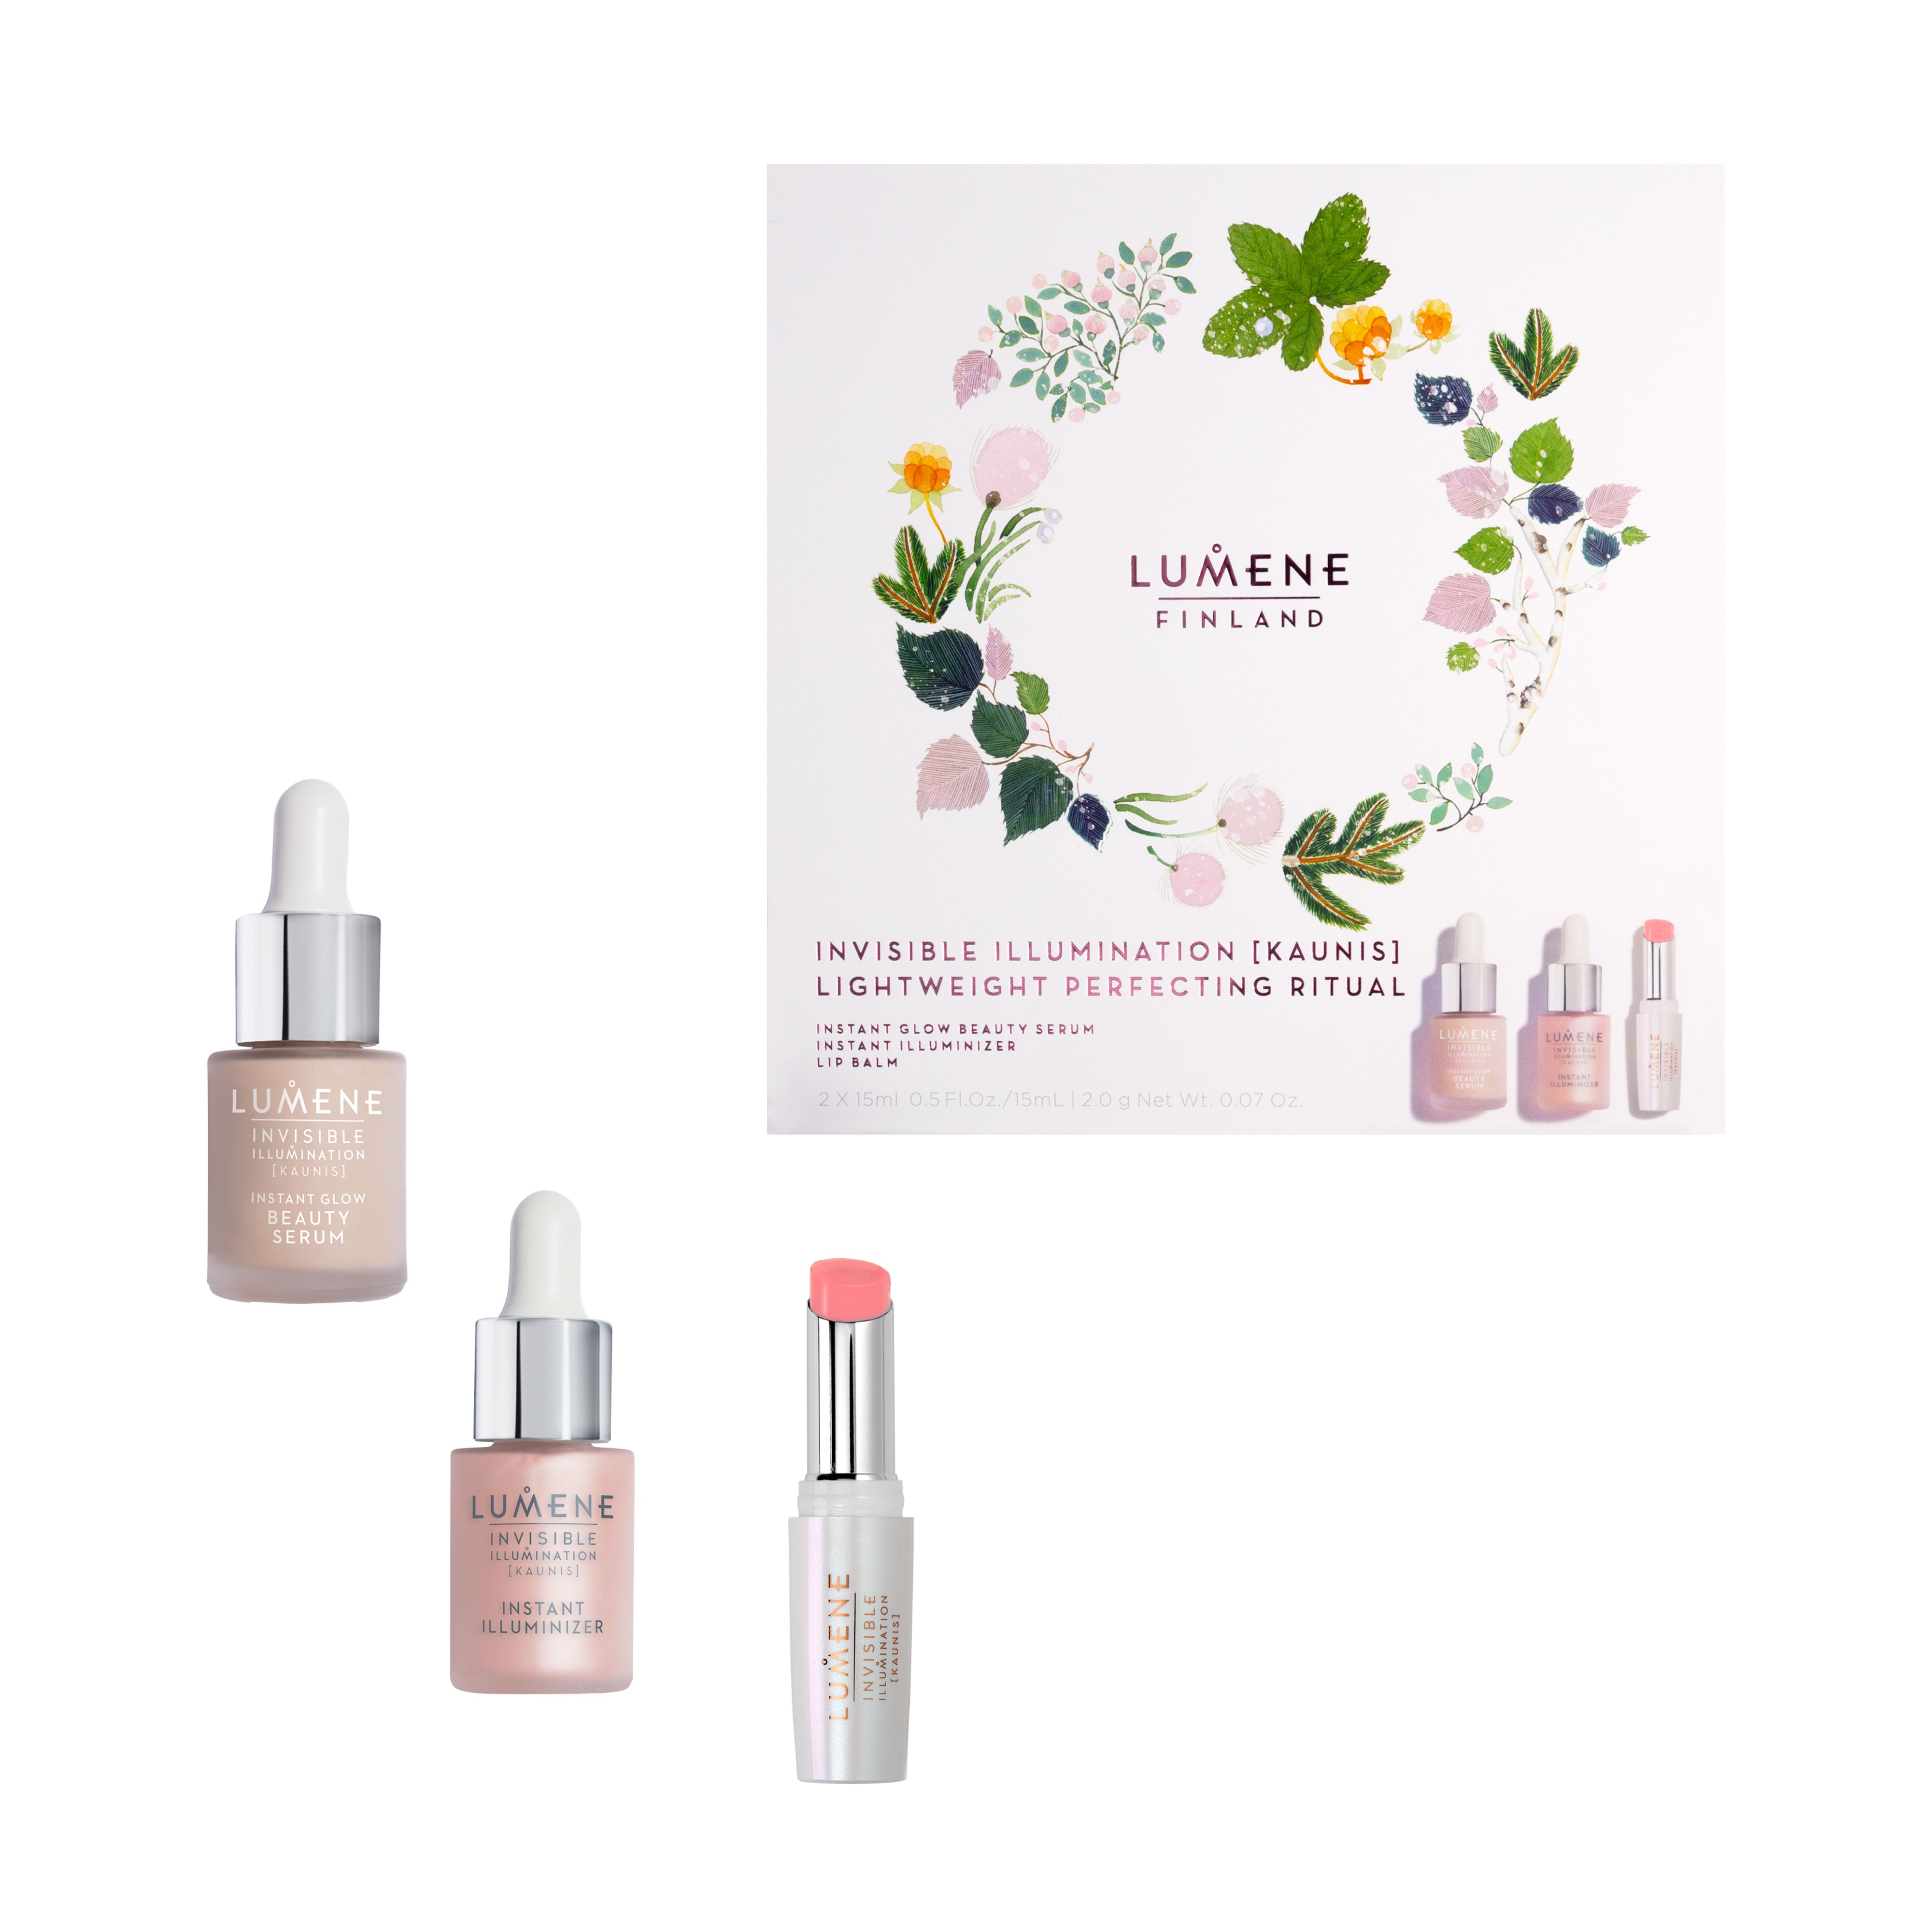 Invisible Illumination Lightweight Perfecting Ritual Giftbox